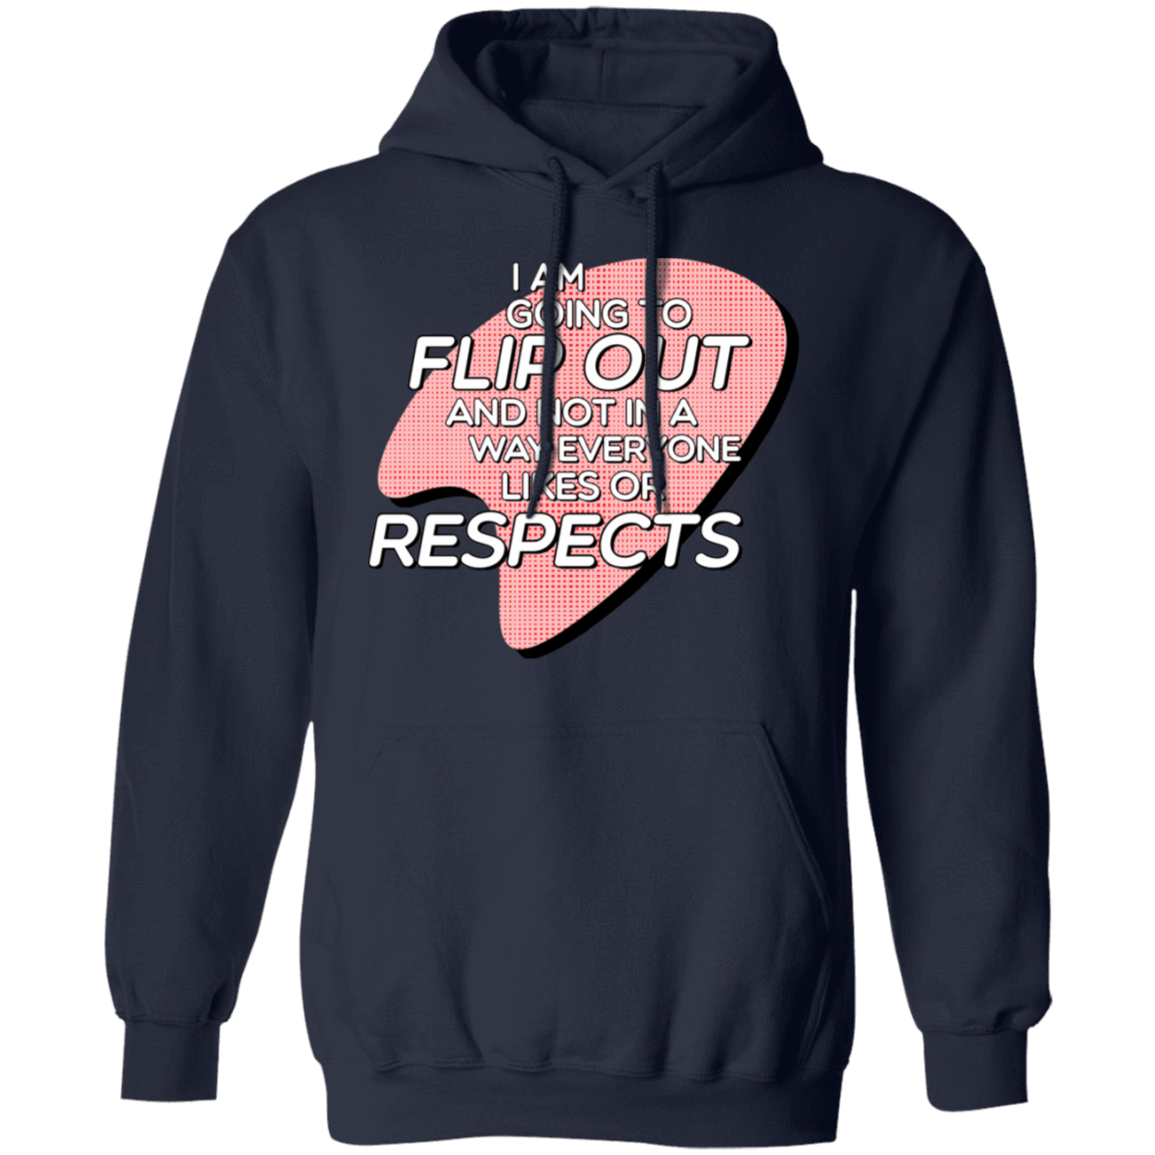 I Am Going to Flip Out And Not In A Way Everyone Likes Or Respects T-Shirts, Hoodies, Tank 541-4742-80344024-23135 - Tee Ript